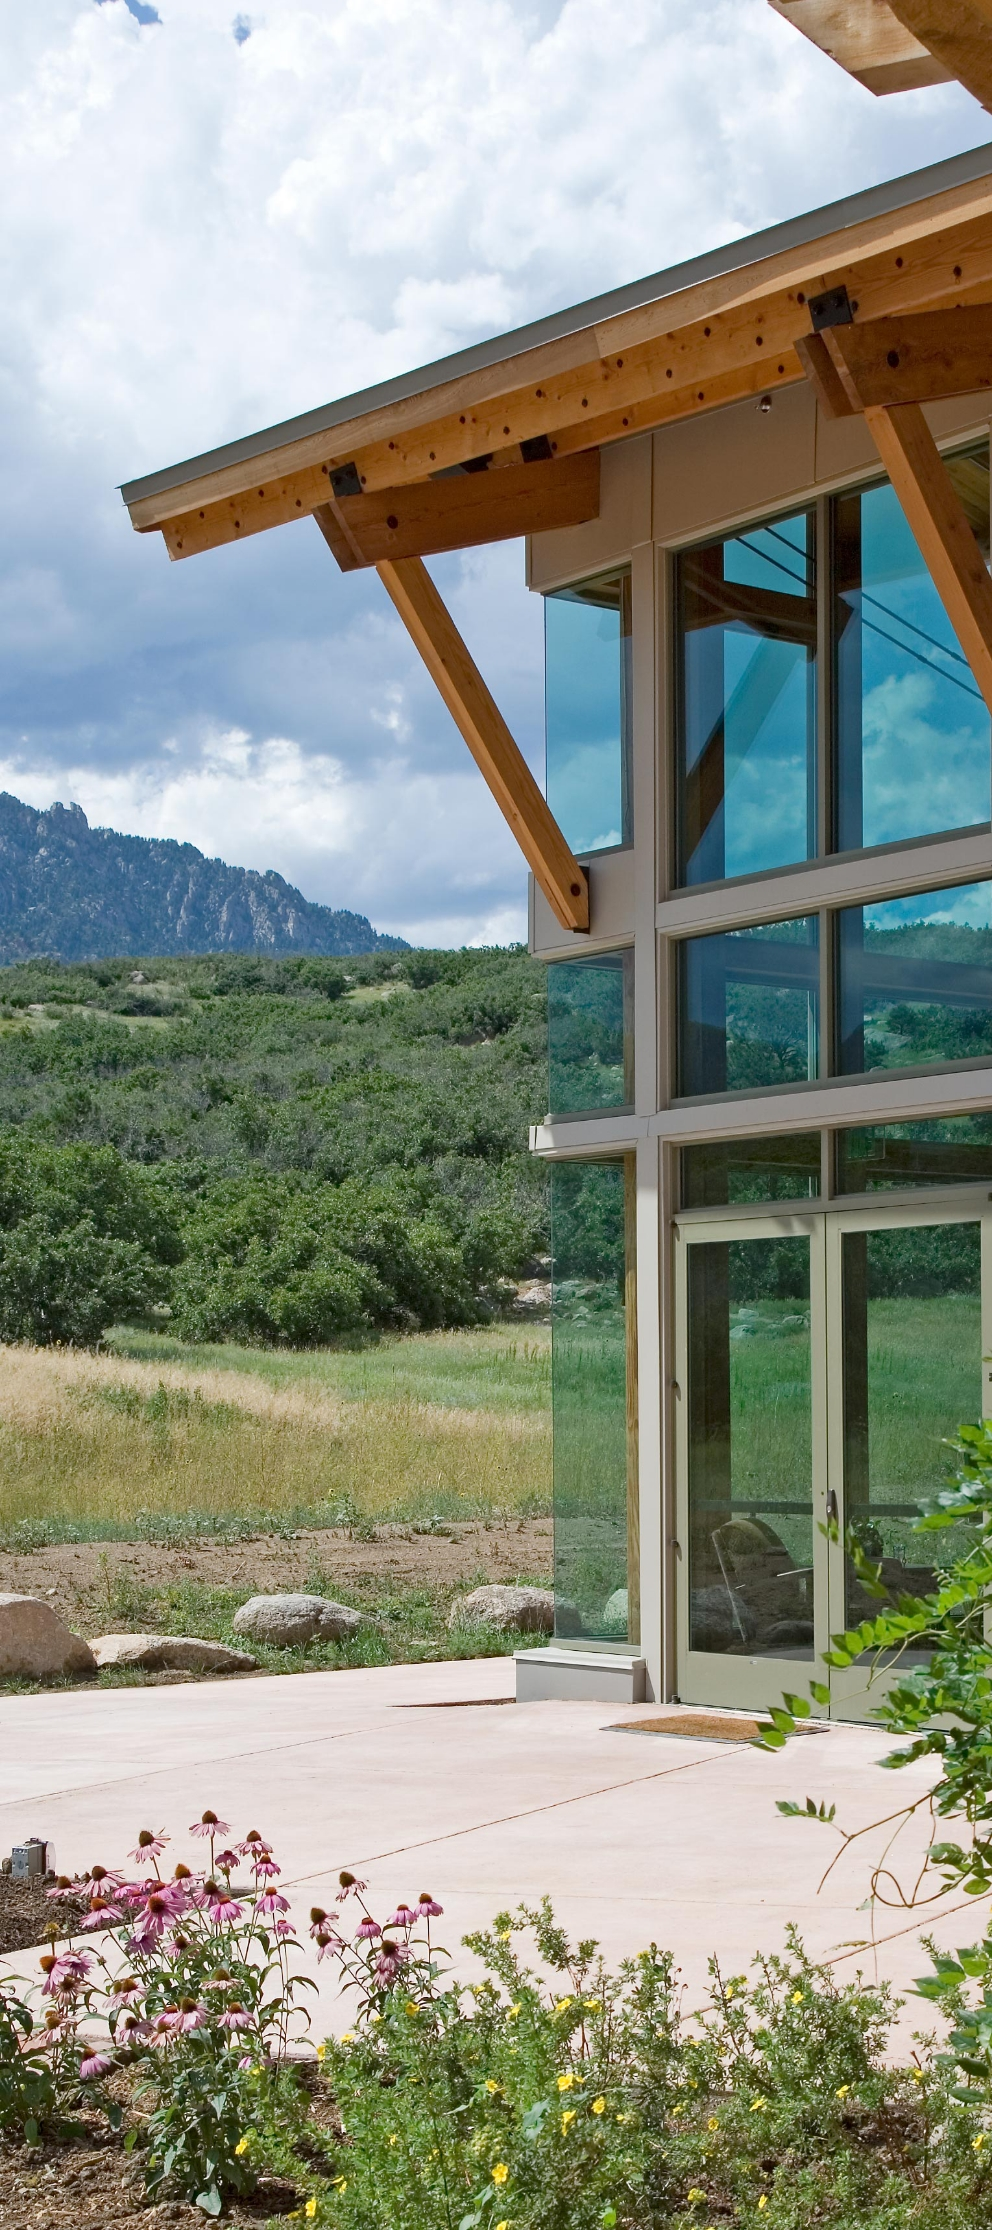 cheyenne_mountain_visitor_center_corner_detail.jpg